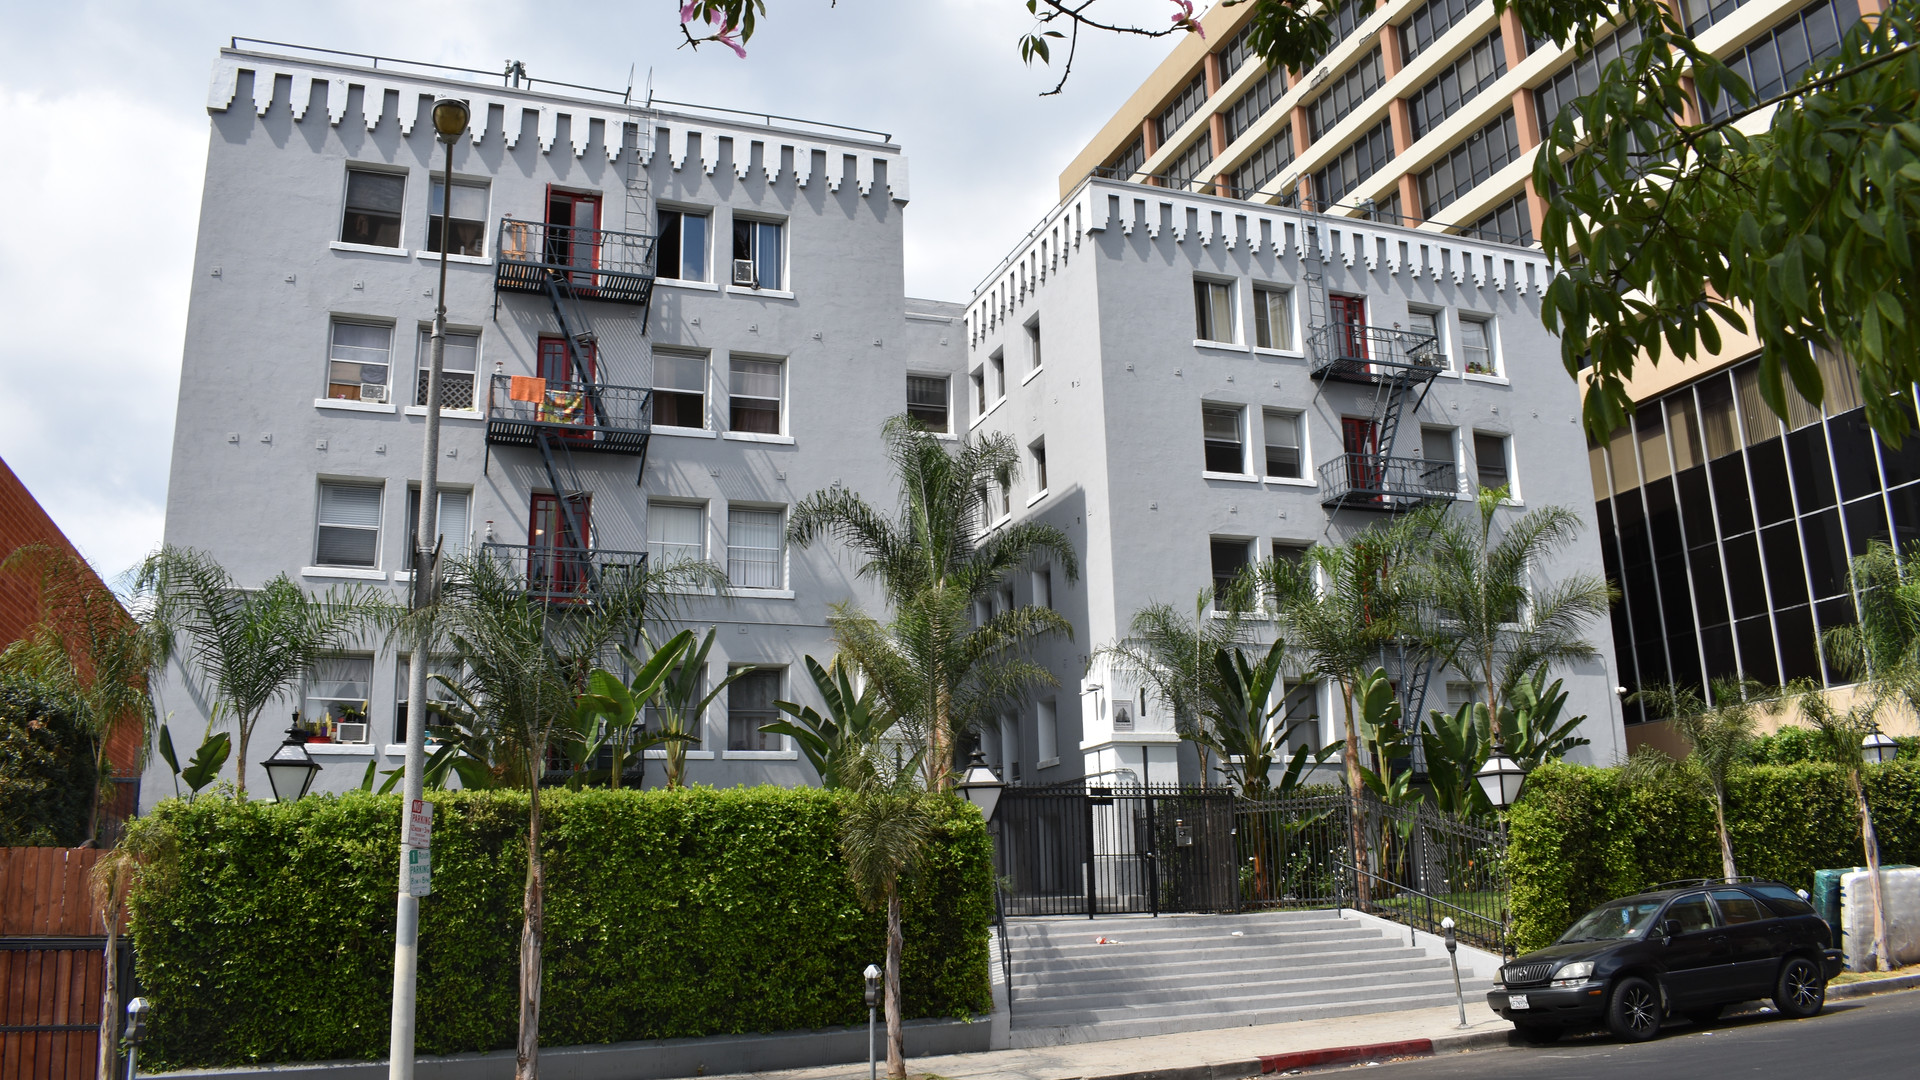 Los Angeles Koreatown Multi-Family Purchase - 59 Units